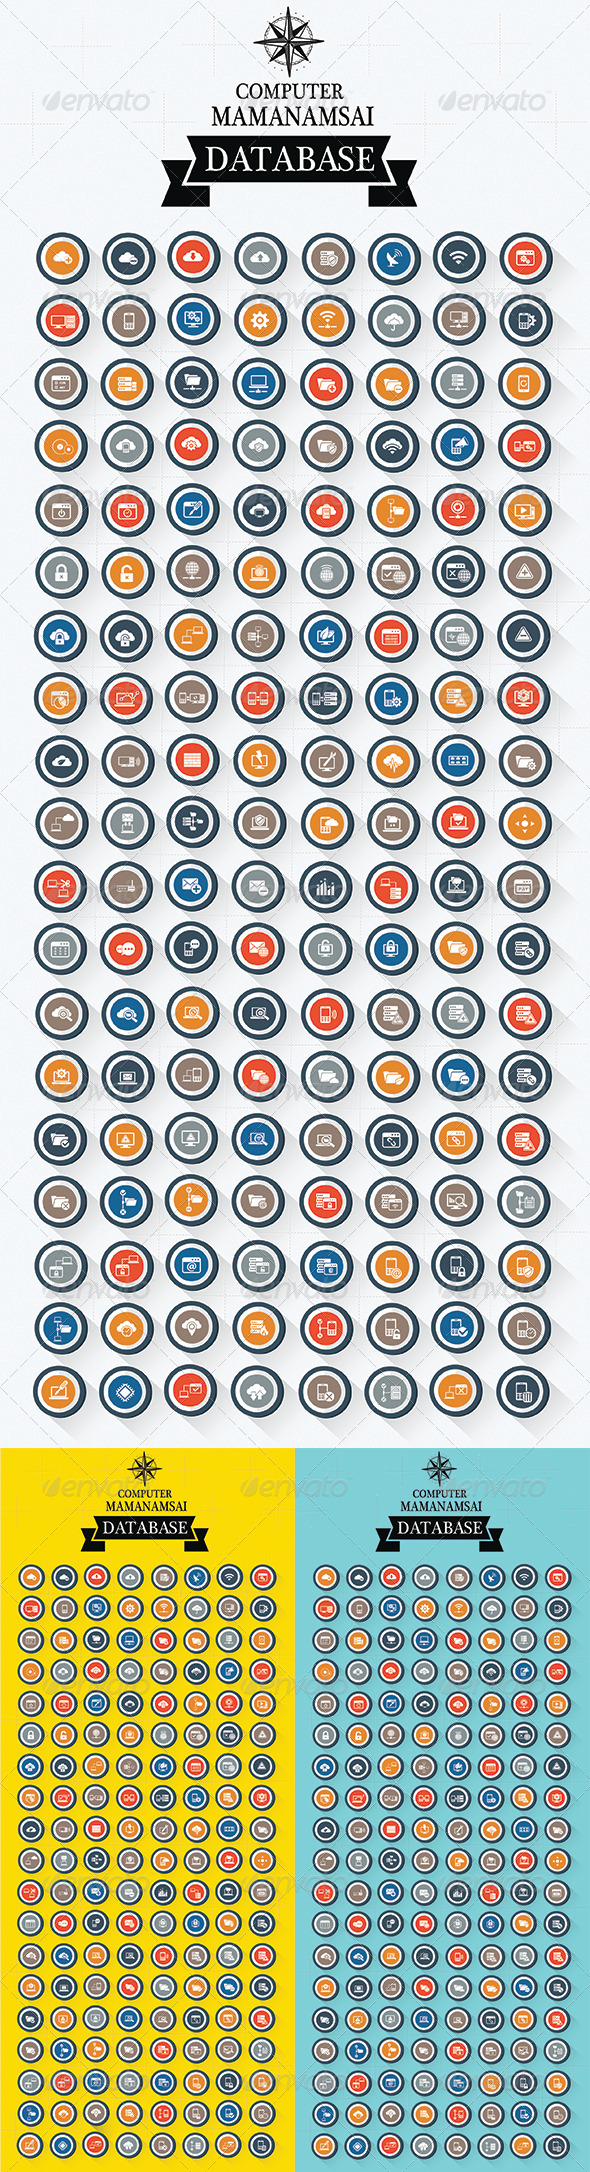 GraphicRiver 152 Database Server Icons 8257073